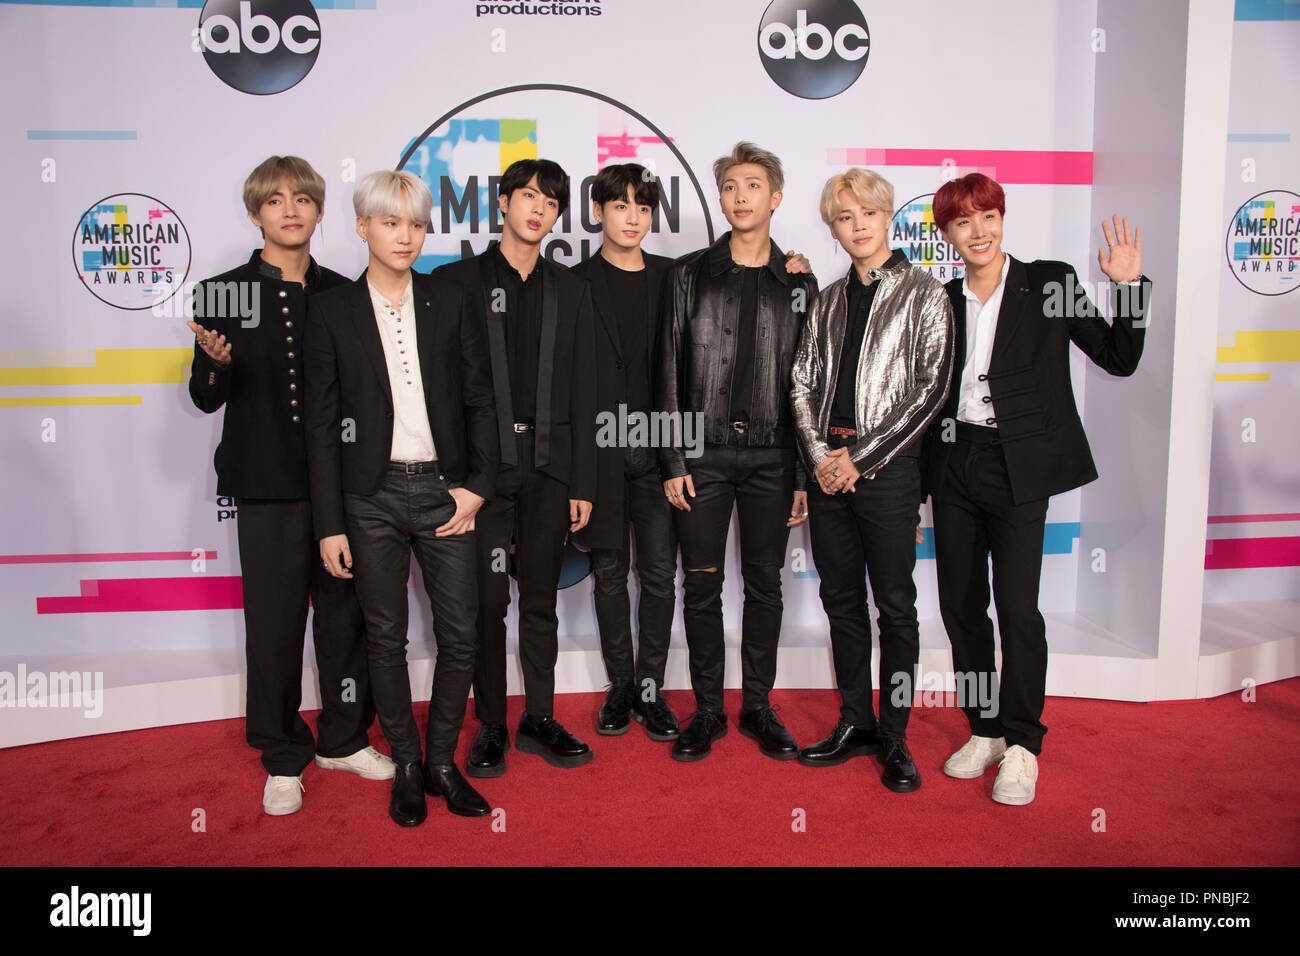 "THE 2017 AMERICAN MUSIC AWARDS(r) - The ""2017 American Music Awards,"" the world's biggest fan-voted award show, broadcasts live from the Microsoft Theater in Los Angeles on SUNDAY, NOVEMBER 19, 2017, on ABC.  BTS  File Reference # 33481_082  For Editorial Use Only -  All Rights Reserved - Stock Image"